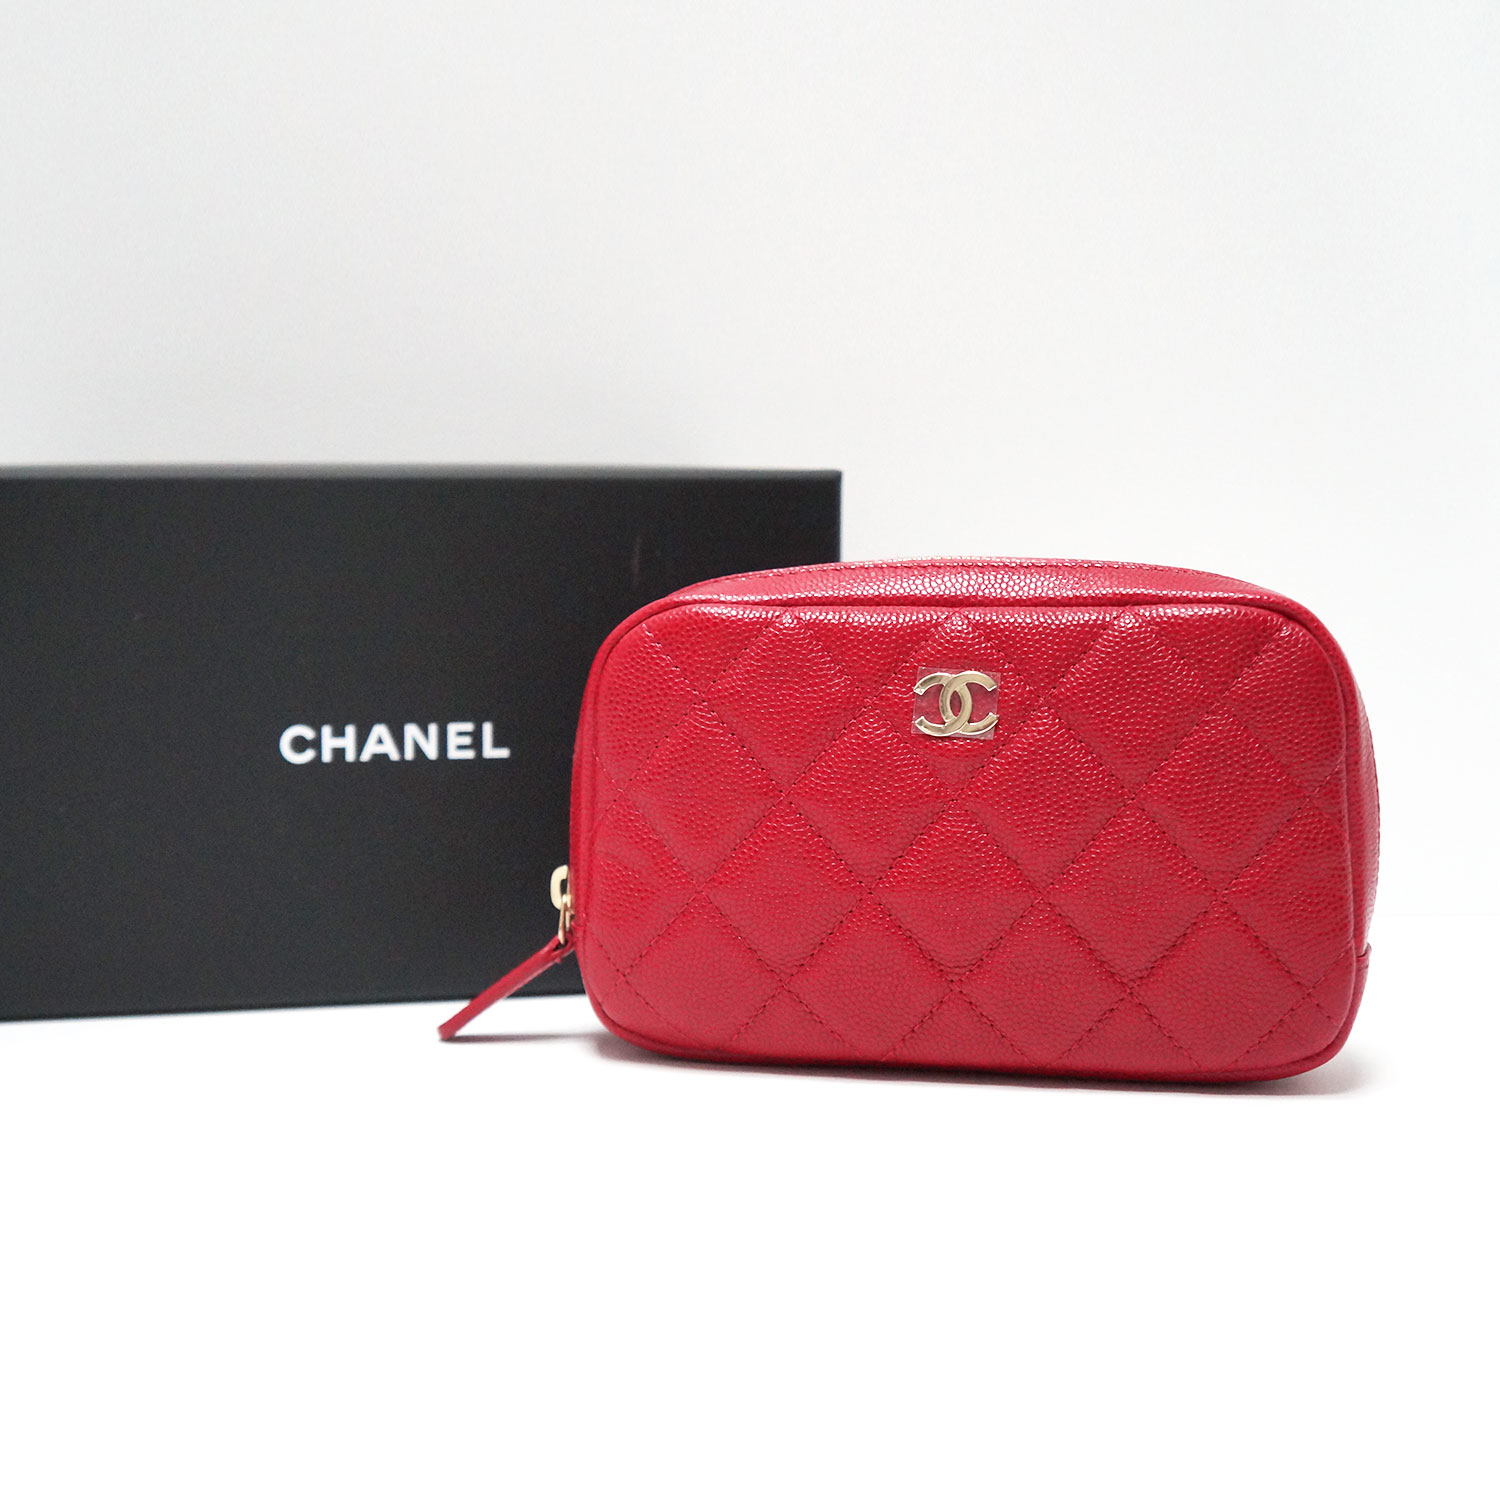 a39263fb235e Chanel Red Caviar Leather Quilted Makeup Case Clutch Bag